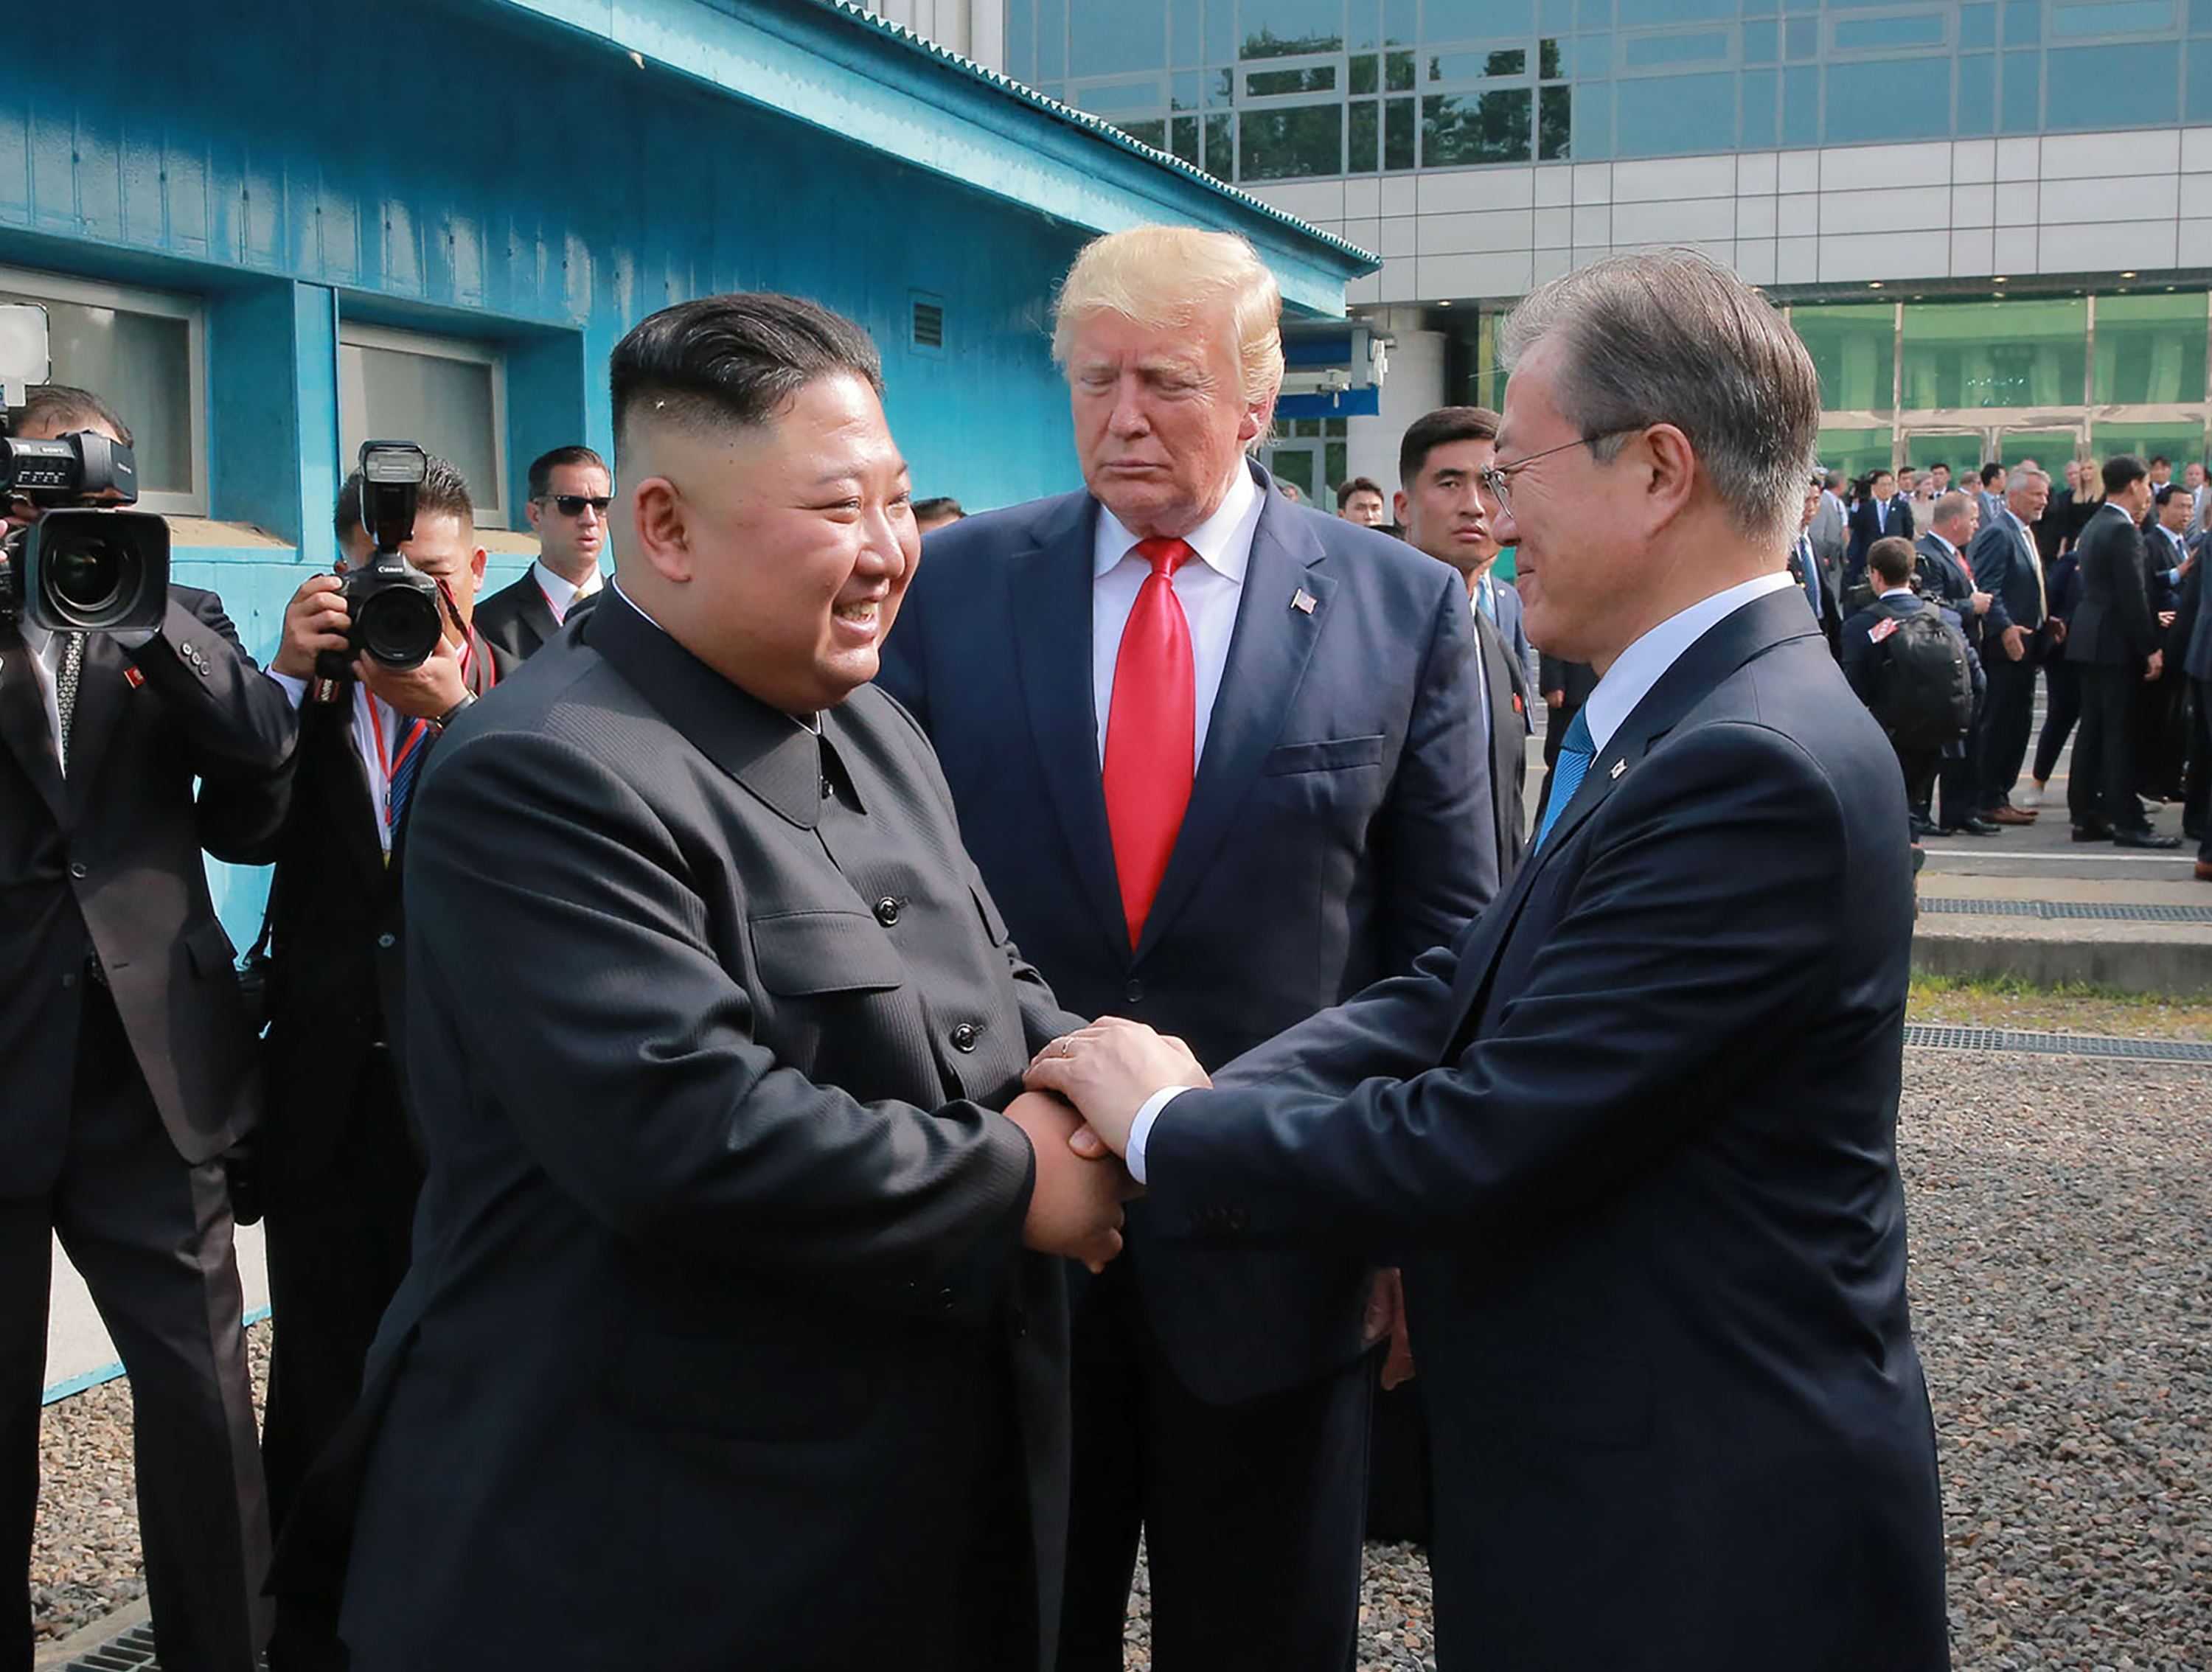 Birds at border prompt S. Korea to launch jets, issue alert